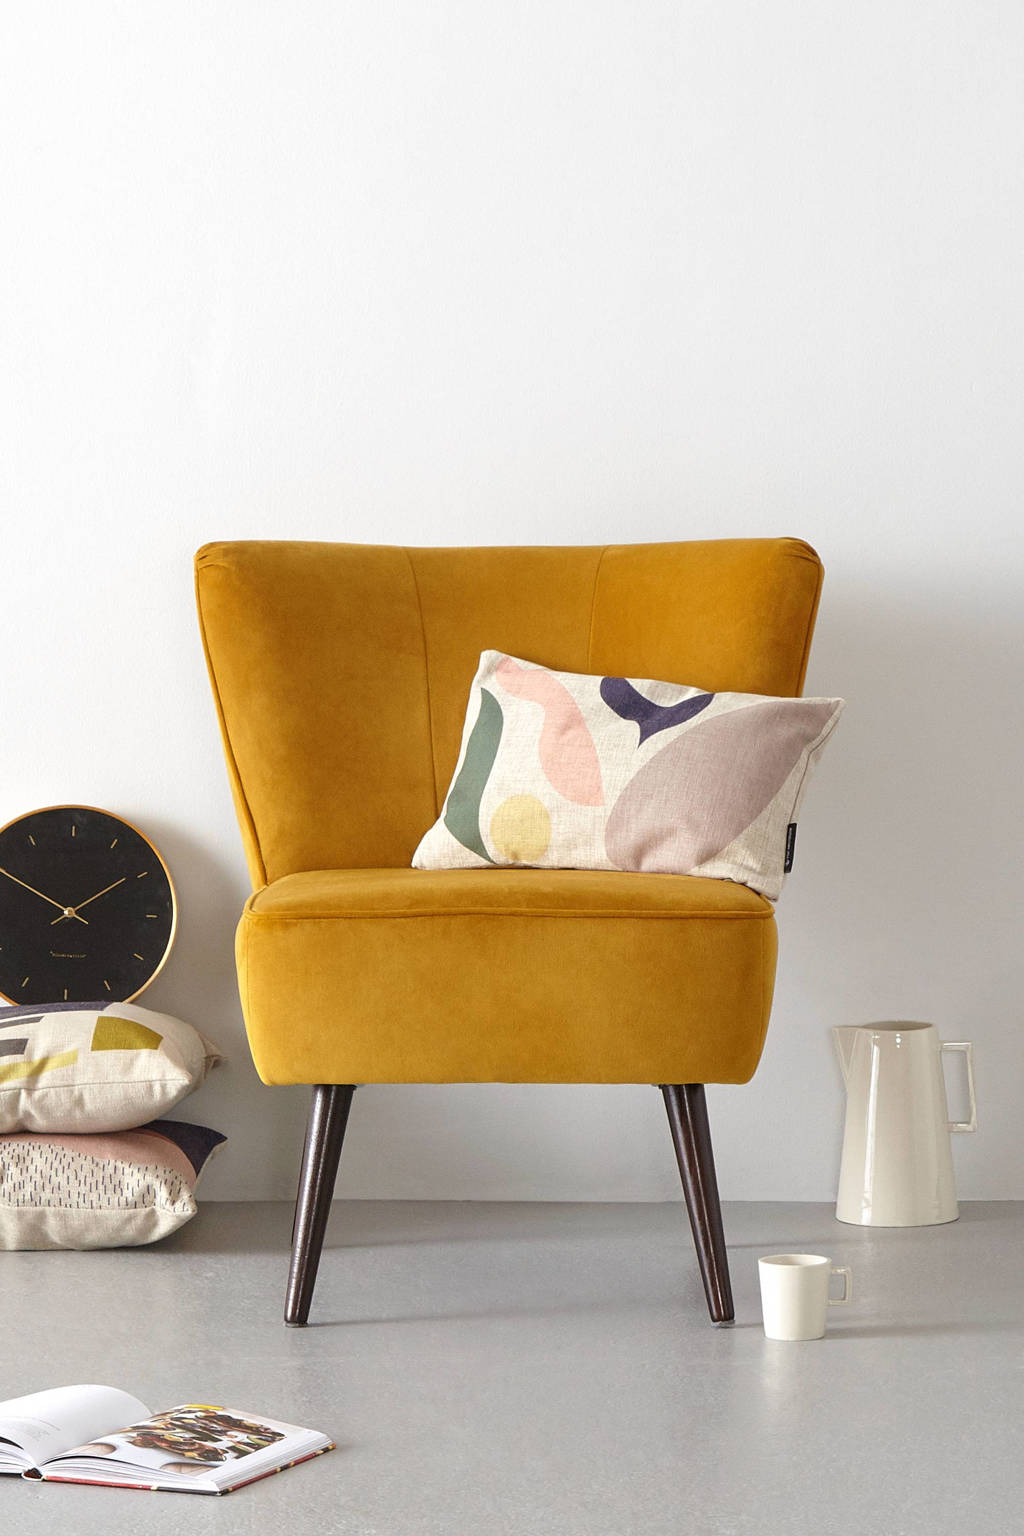 whkmp's own fauteuil Coco velours, Okergeel